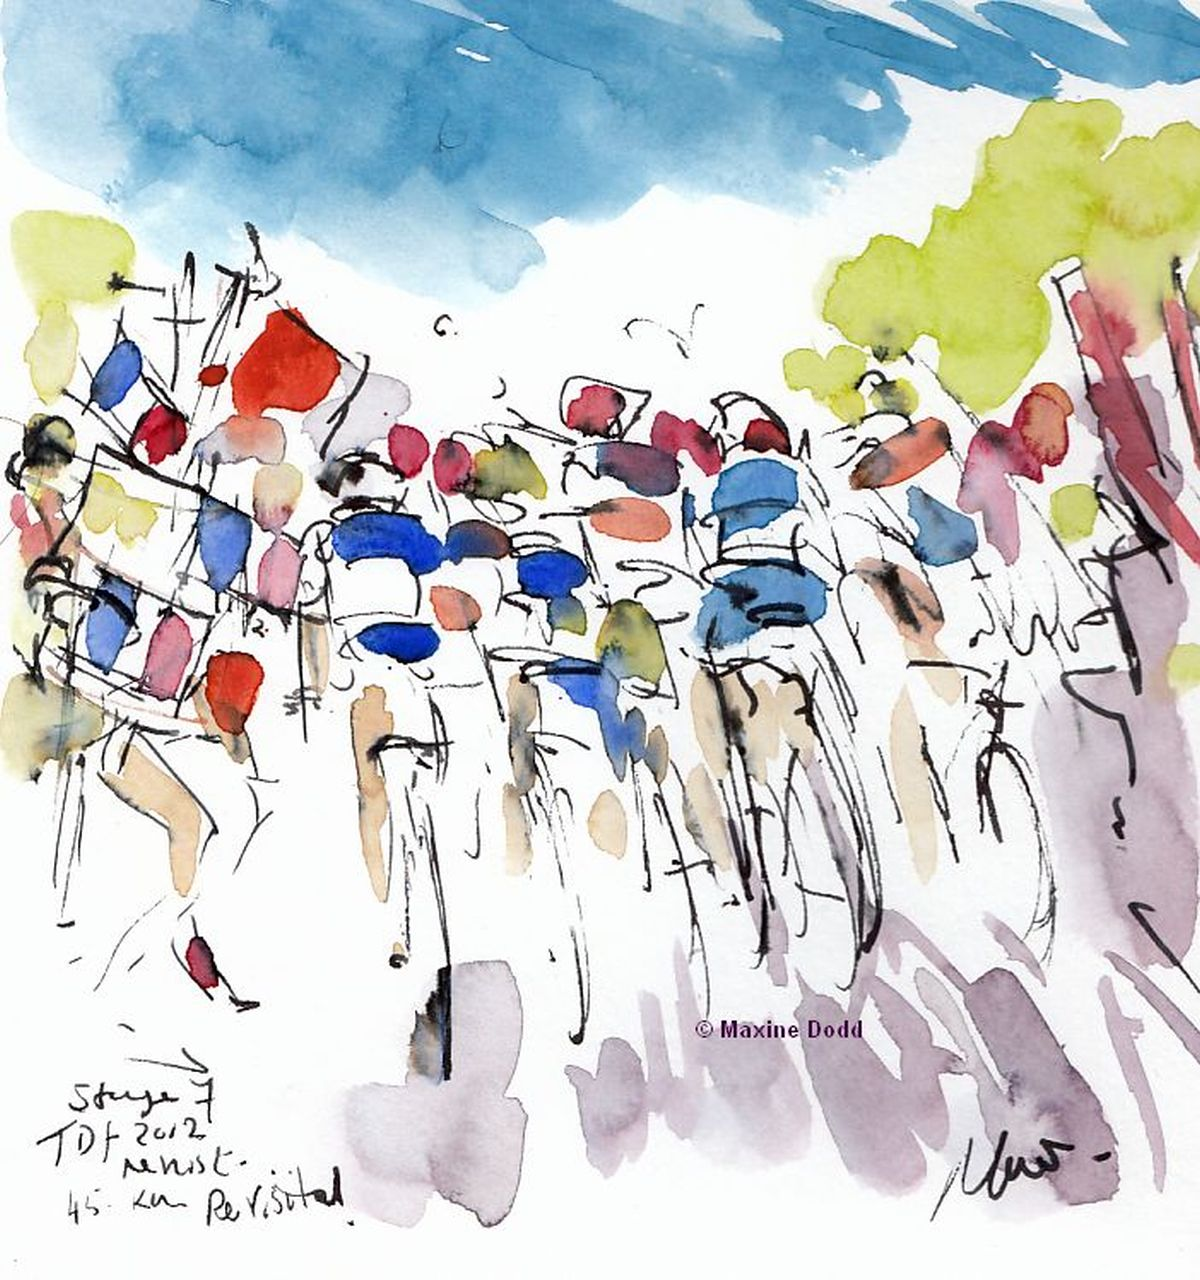 Tour de France Revisited, Stage 7, 45km, watercolour, by Maxine Dodd